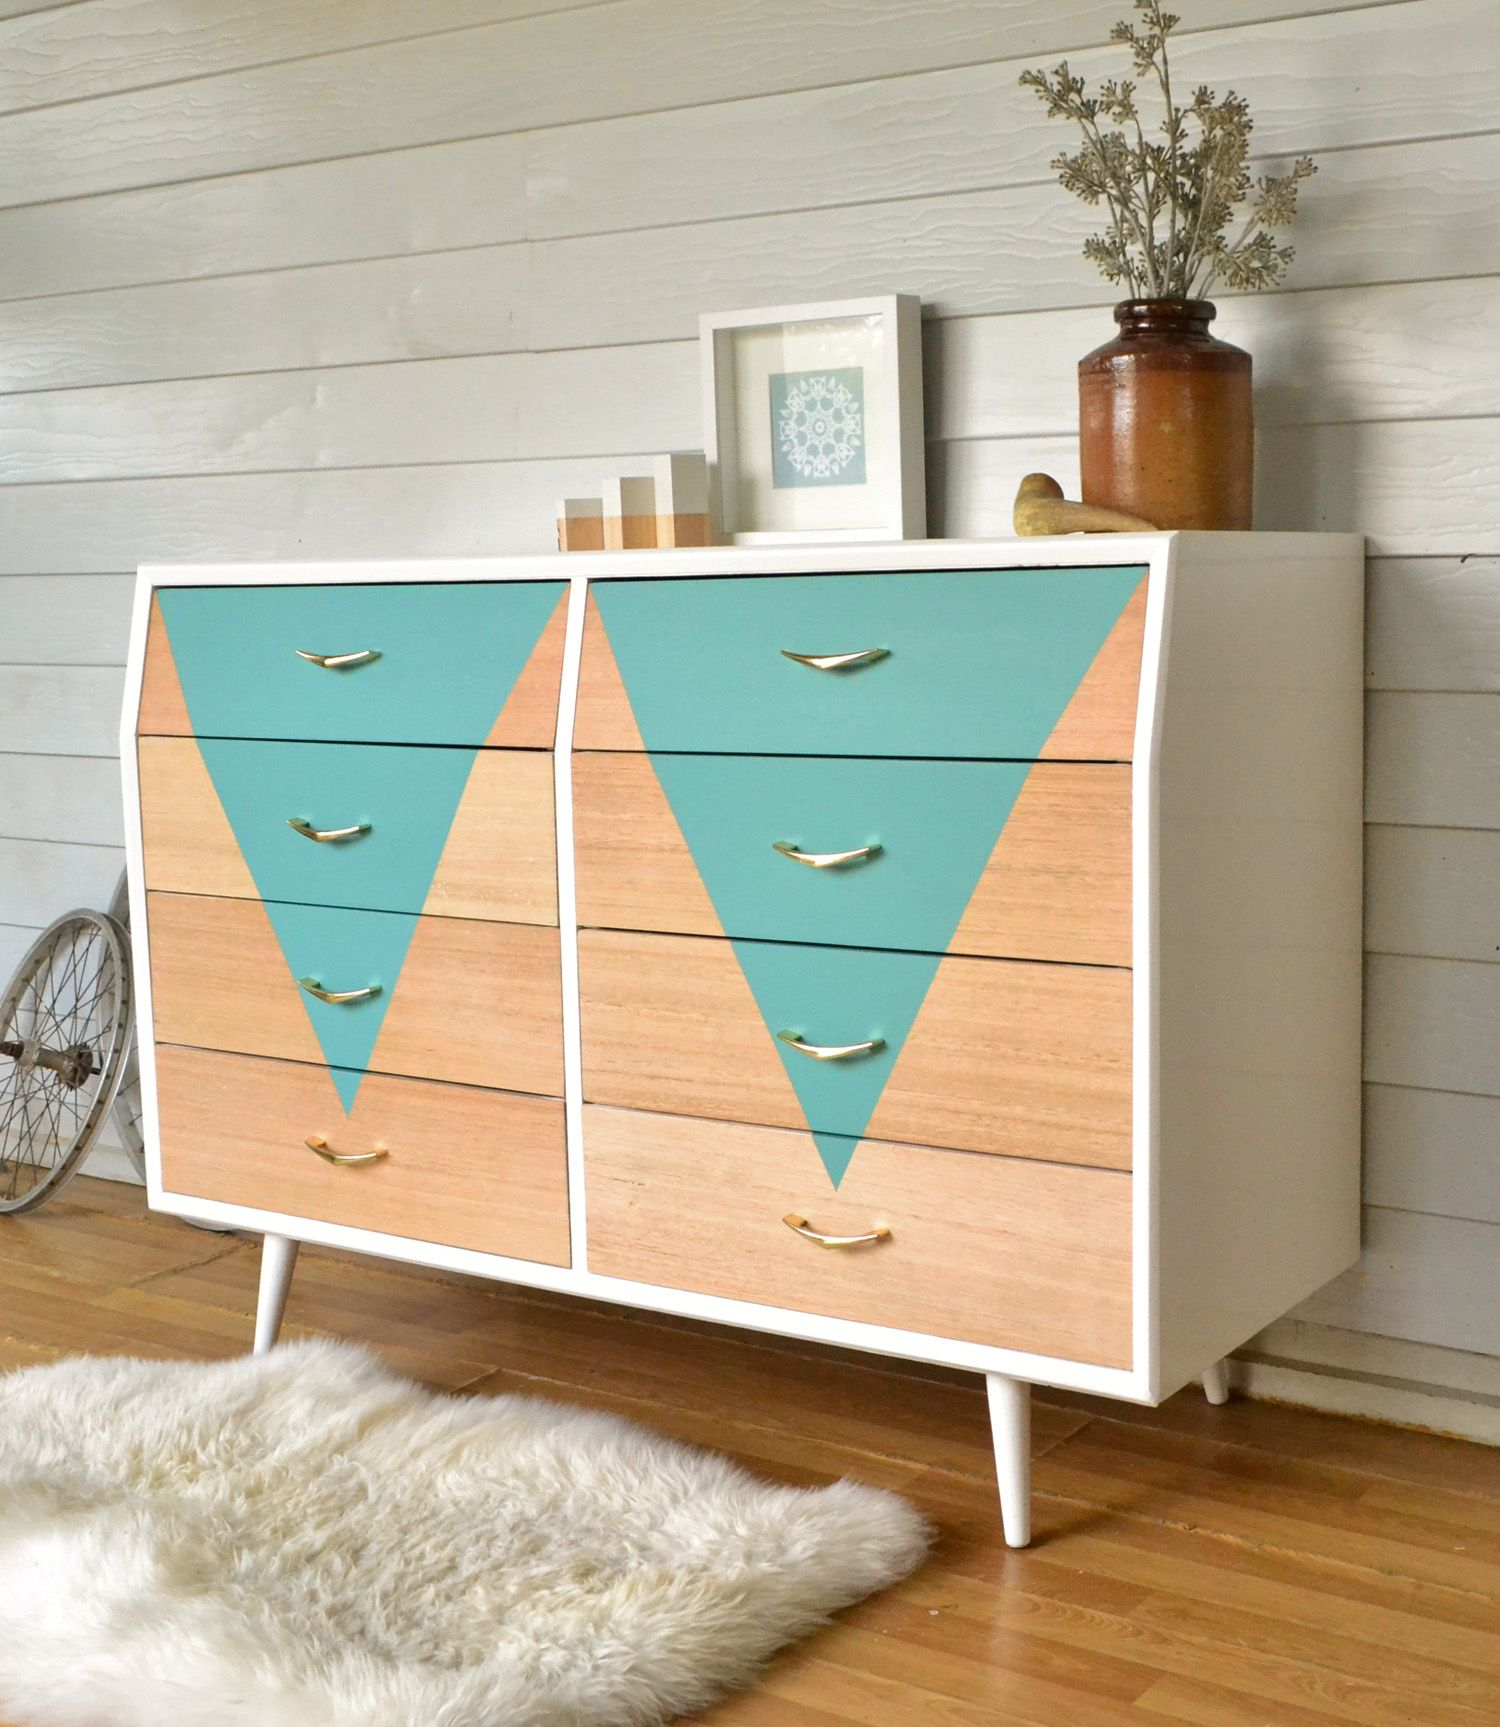 Raw Timber Furniture Original 60s Chest Of Drawers Painted In Gloss White